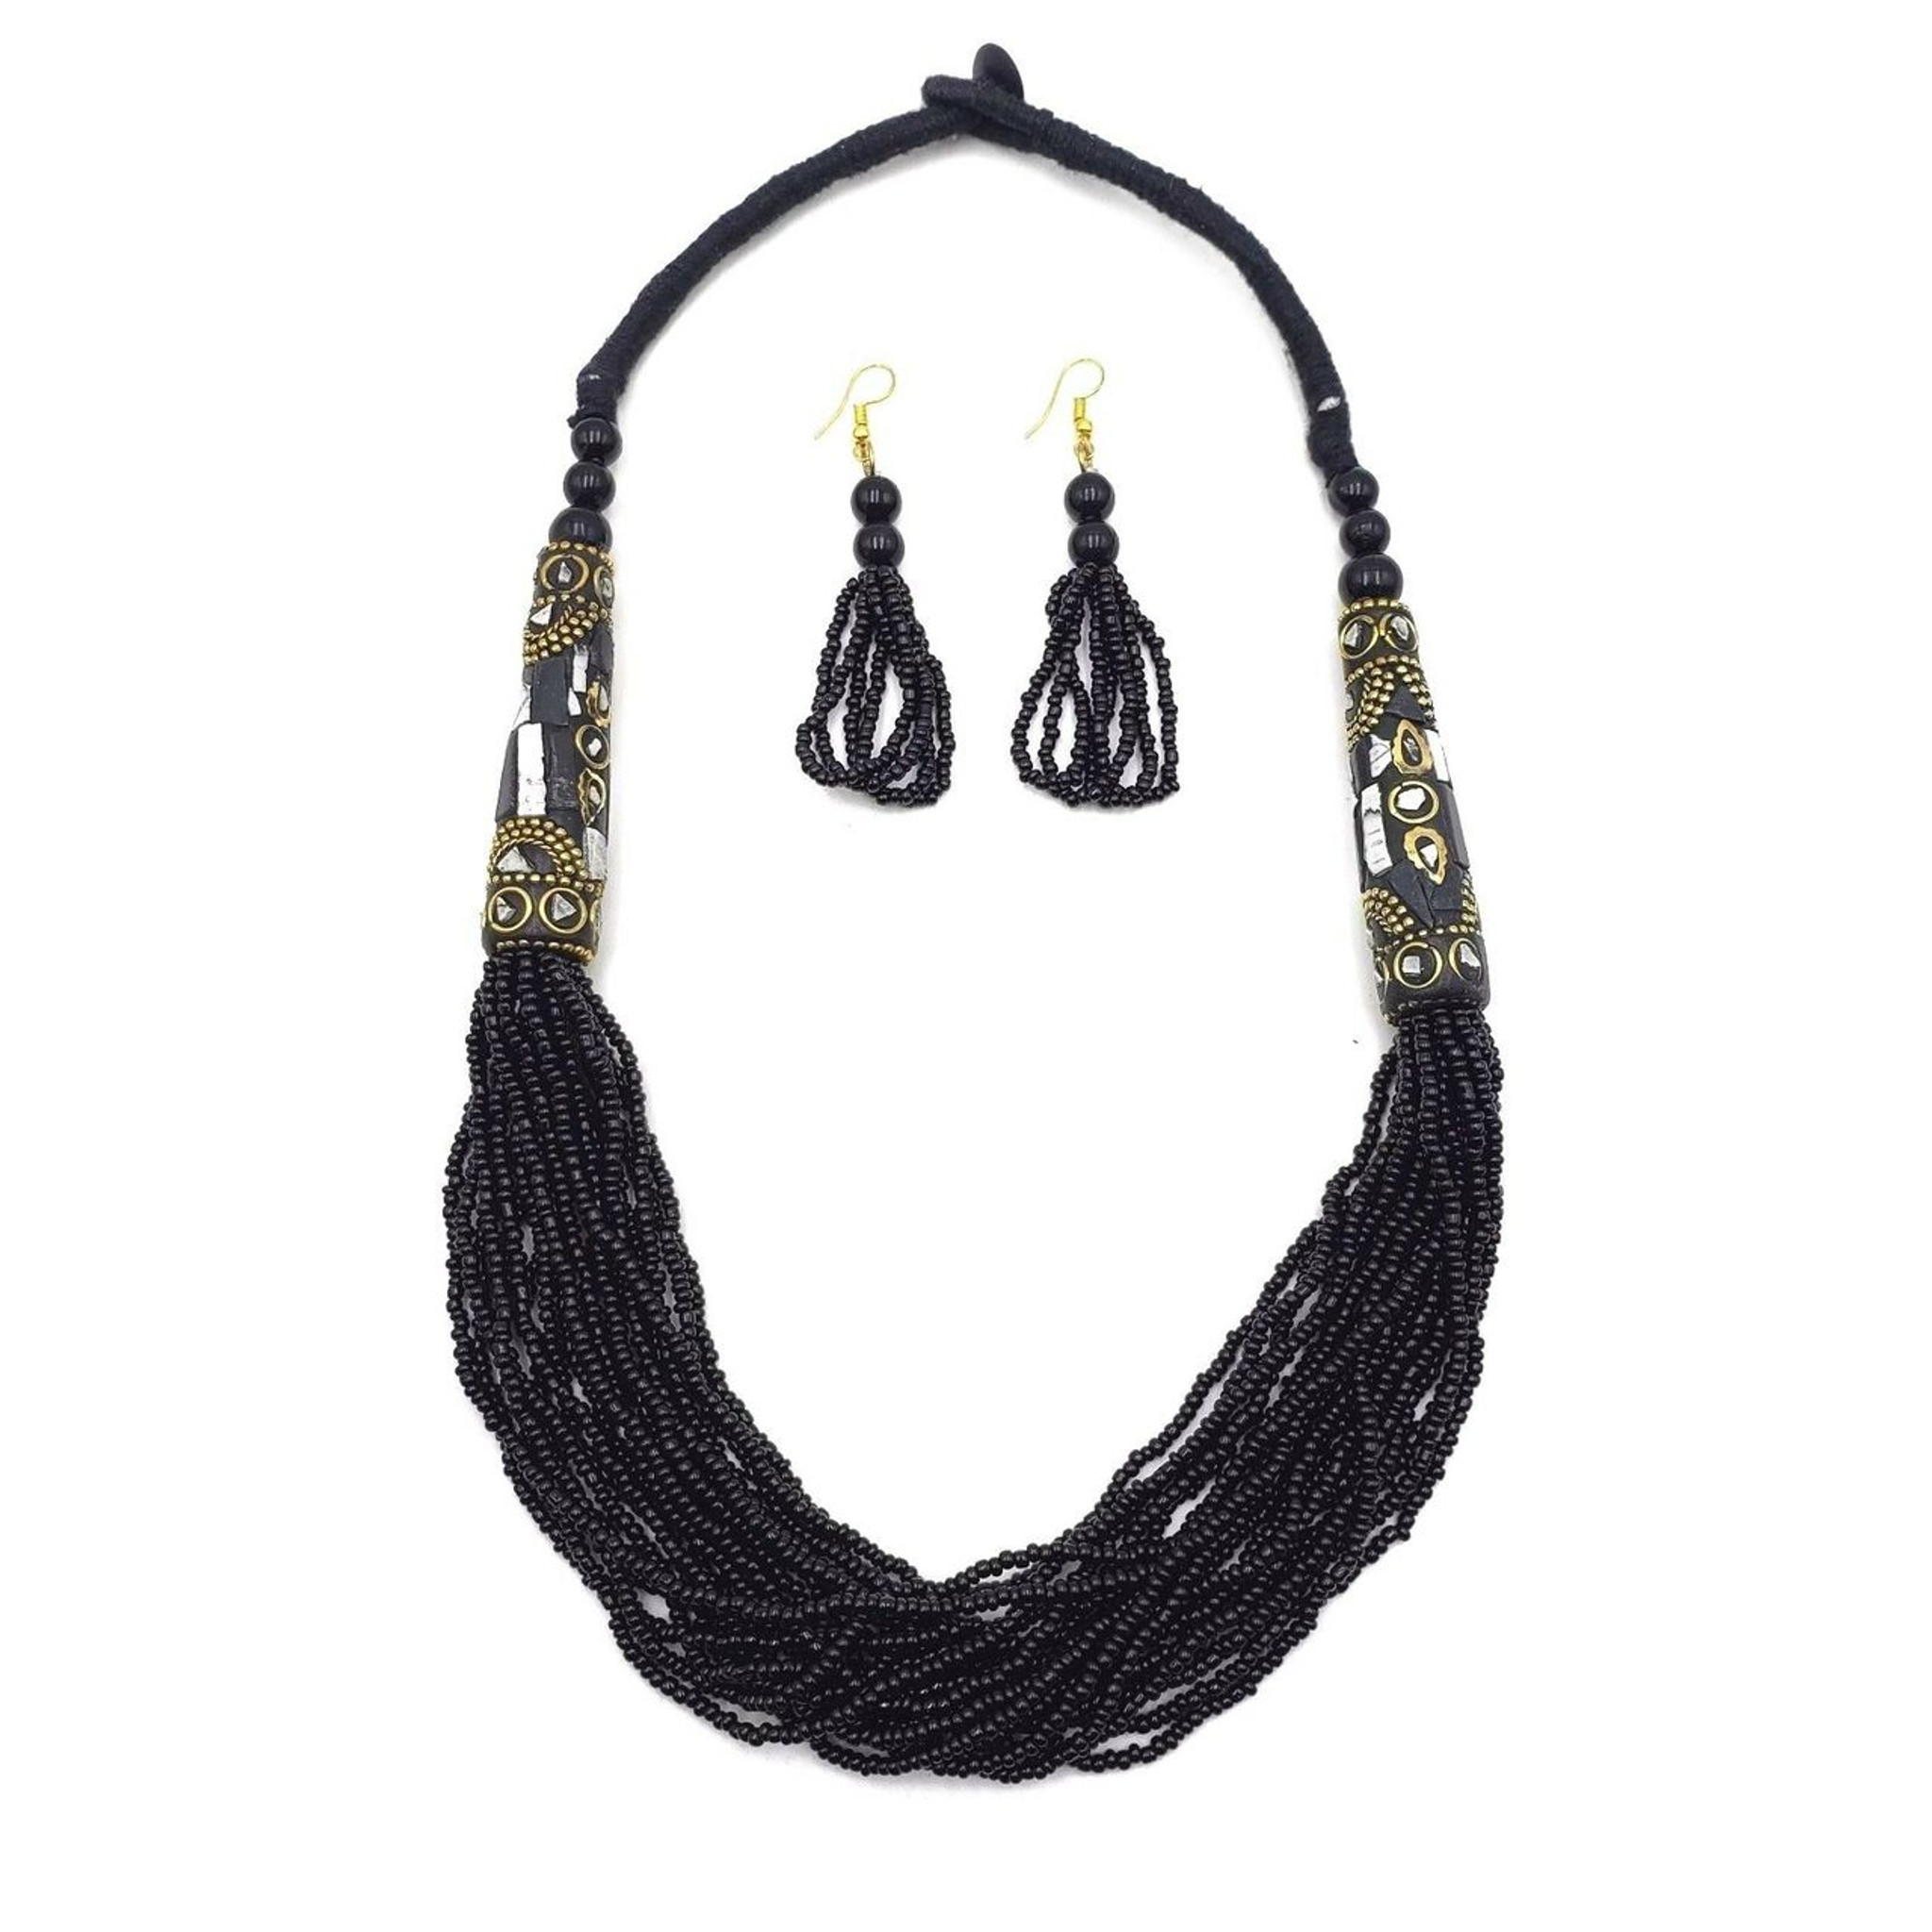 Baji Multi Strand Seed Bead Necklace with Mosaic Brass Charms